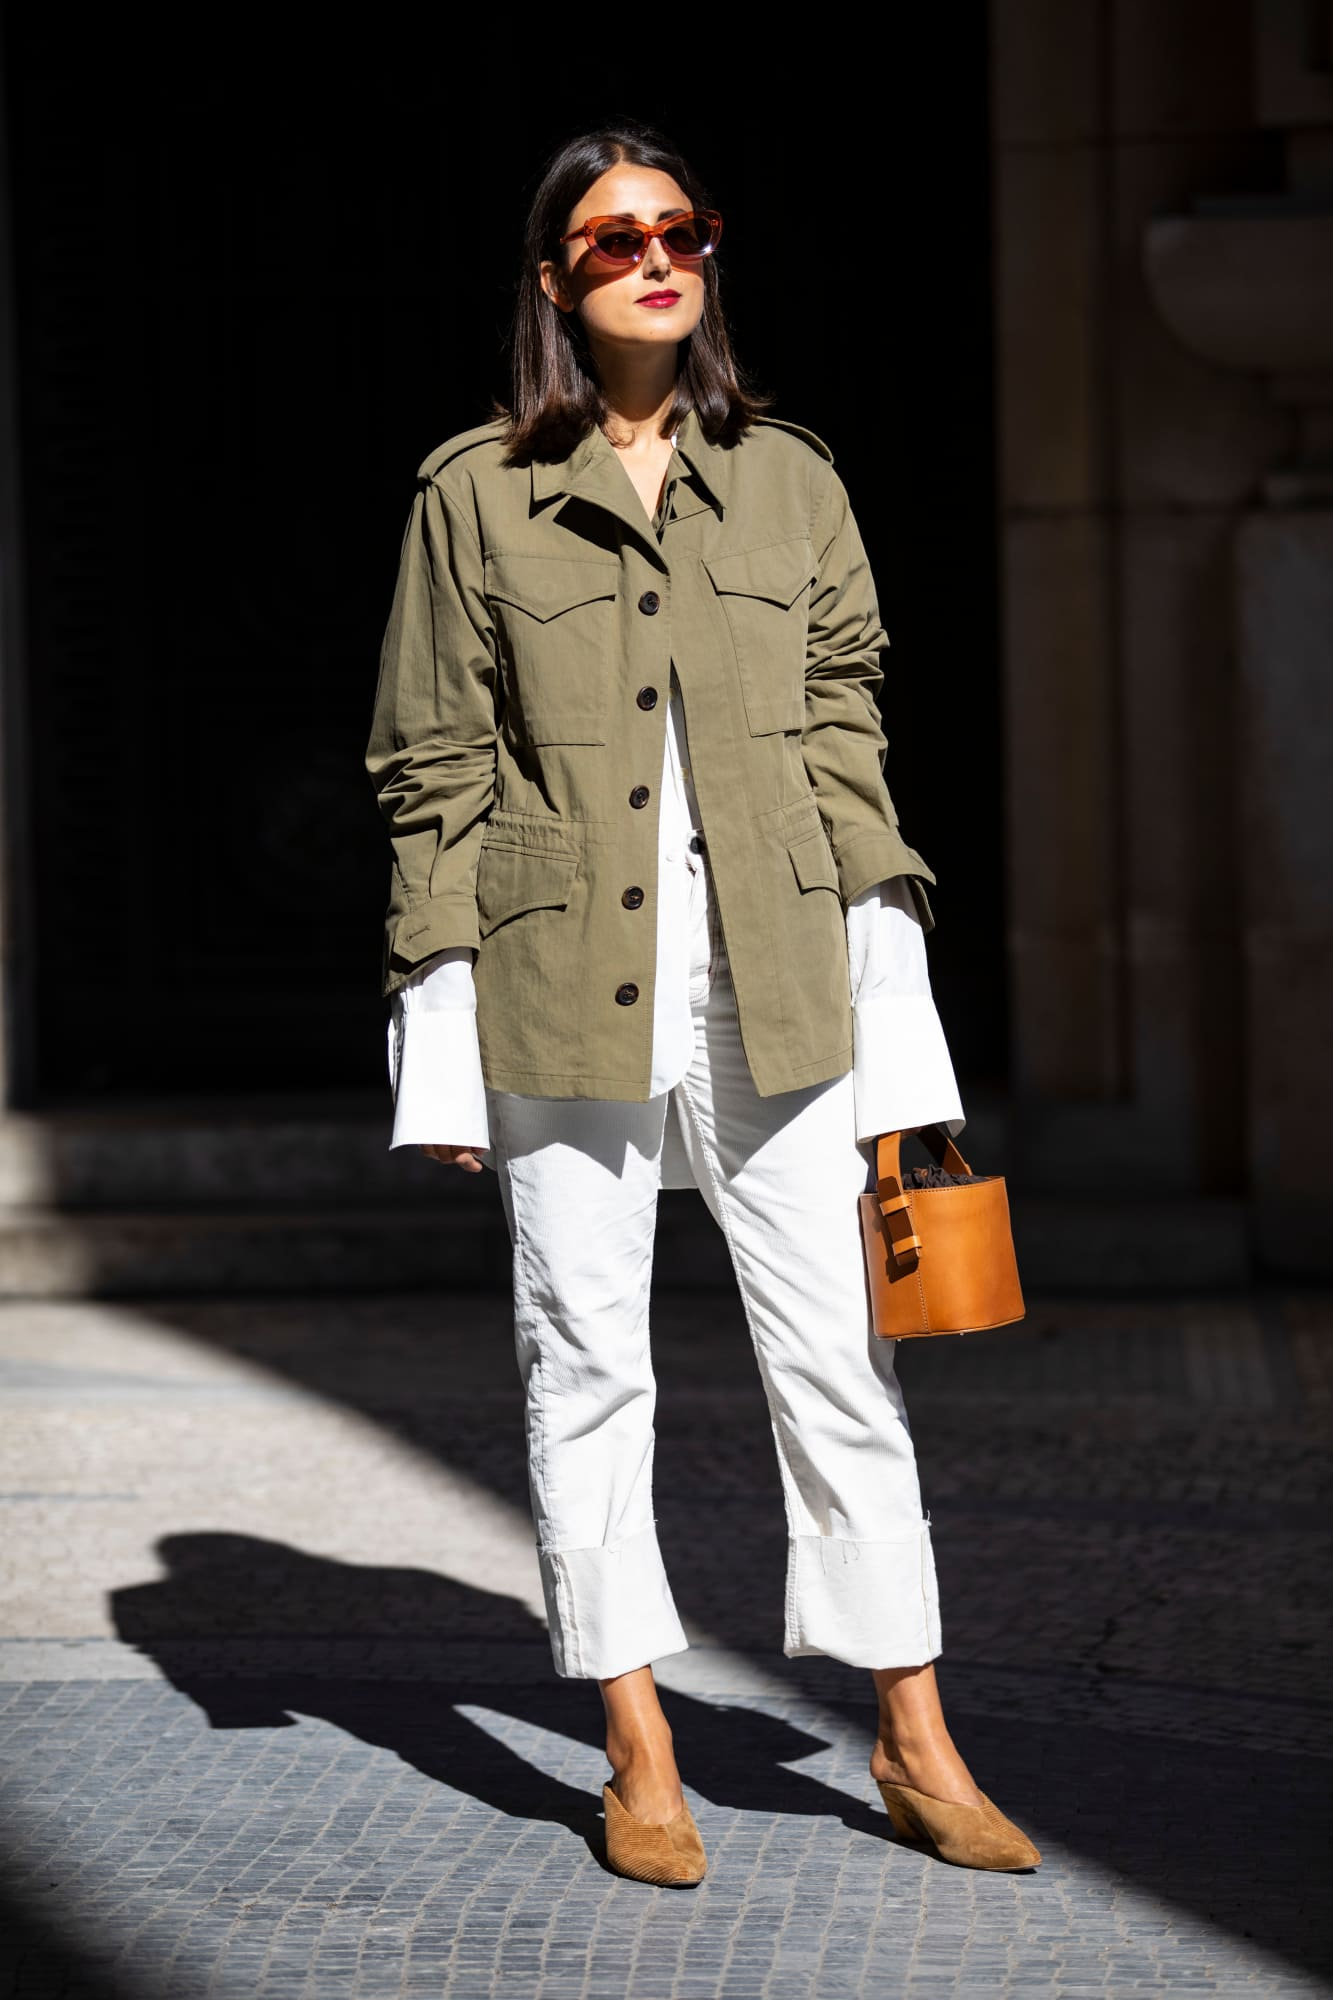 Spring outfit idea and wardrobe staples — green utility jacket, oval sunglasses, white jeans, mule heels